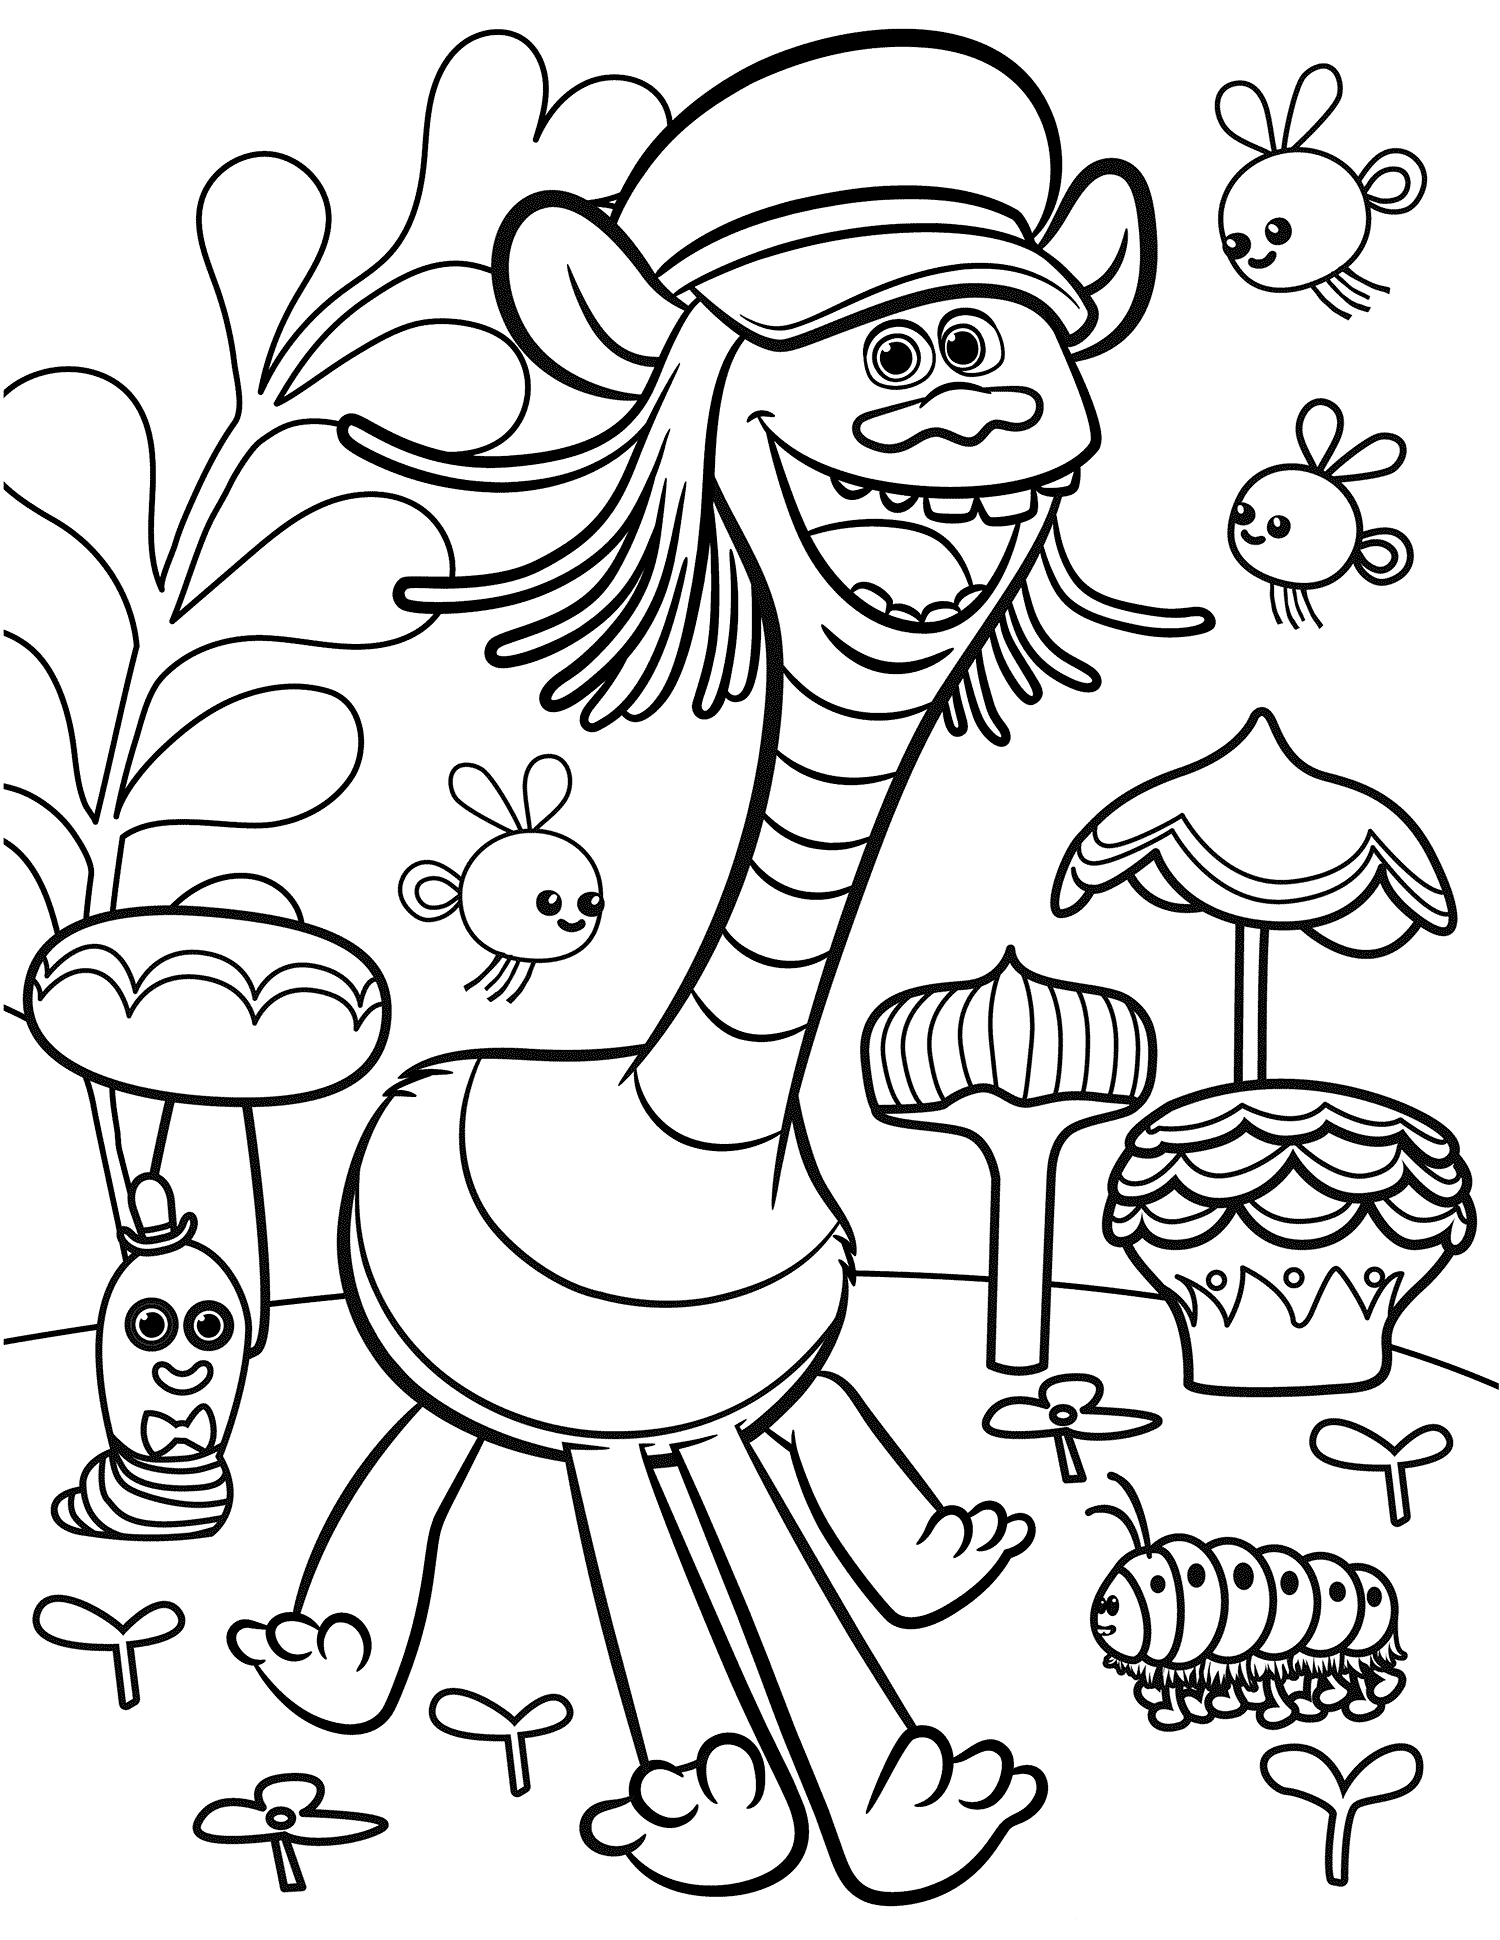 Trolls movie coloring pages best coloring pages for kids for Coloring pages t